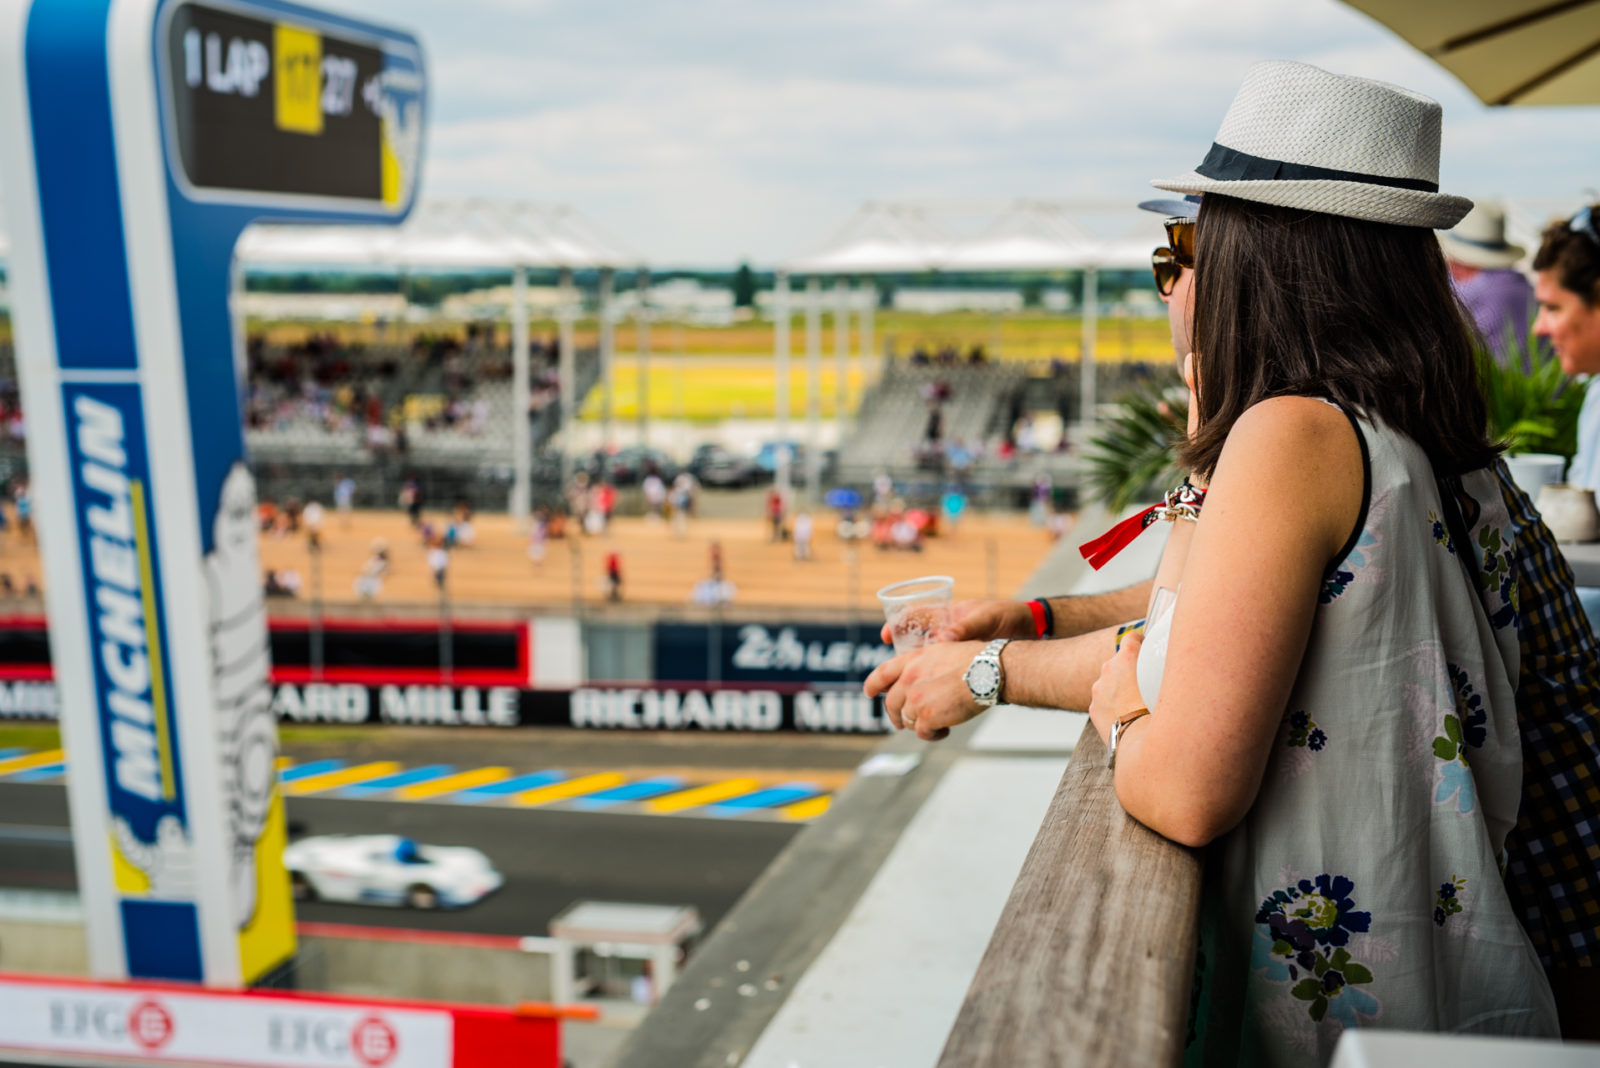 Terrasse open bar Packs vip privilège le mans classic